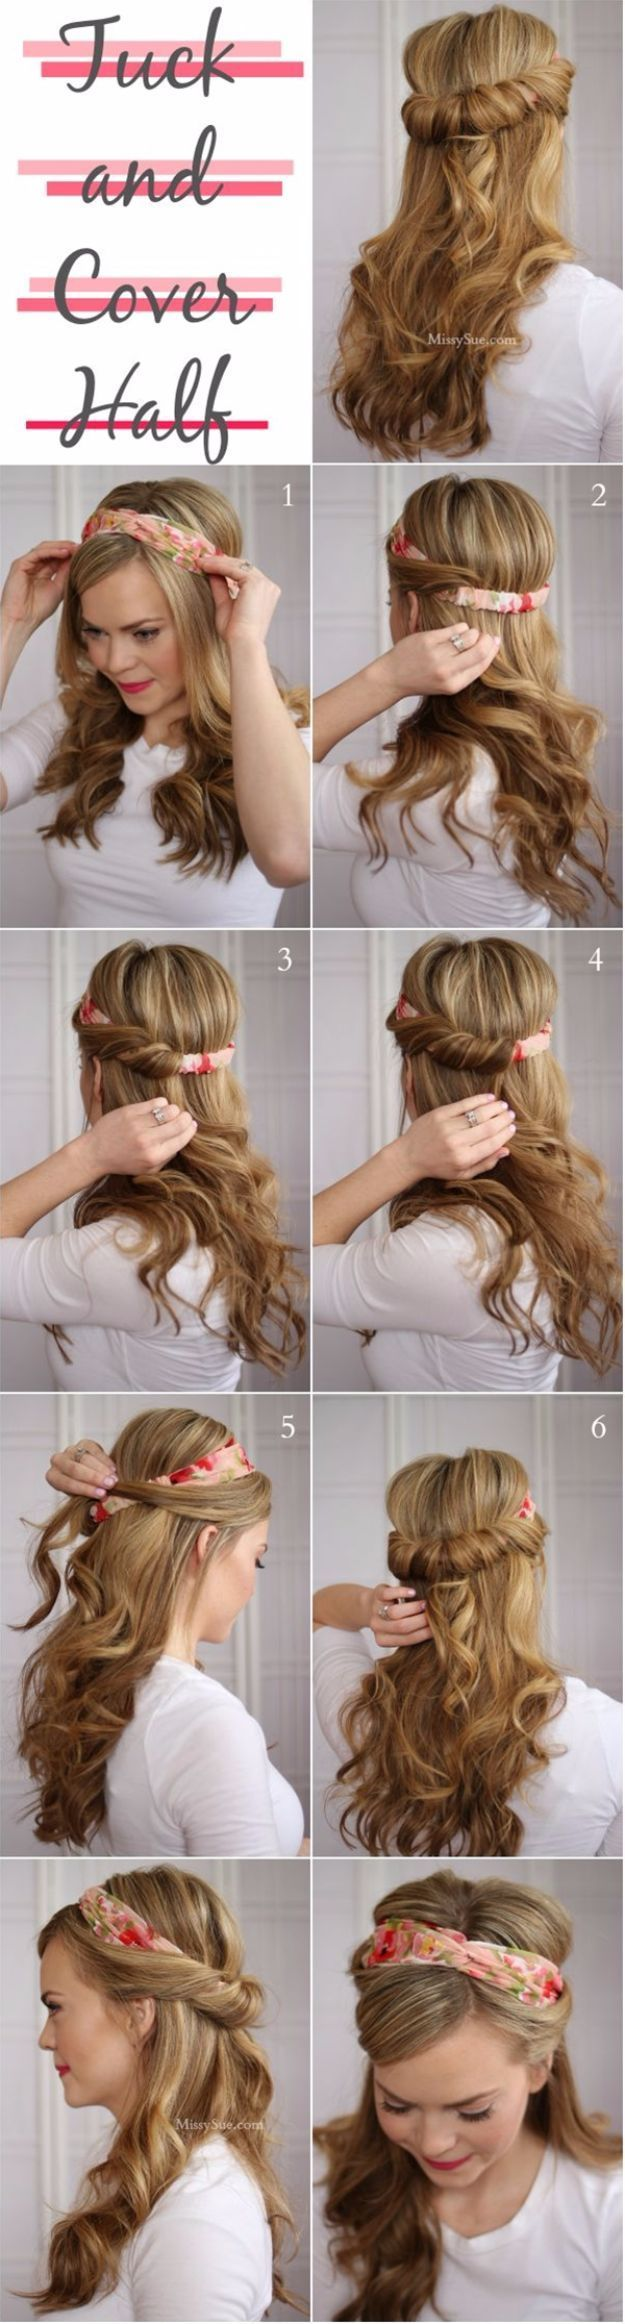 Cool Hair Tutorials for Summer - Tuck and Cover Half Up Hairstyle - Easy Hairstyles and Creative Looks for Hair - Beachy Waves, Hair Styles for Short Hair, Medium Length and Long Hair - Ponytails, Updo Ideas and Quick Last Minute Hairstyle for Teens, Teen